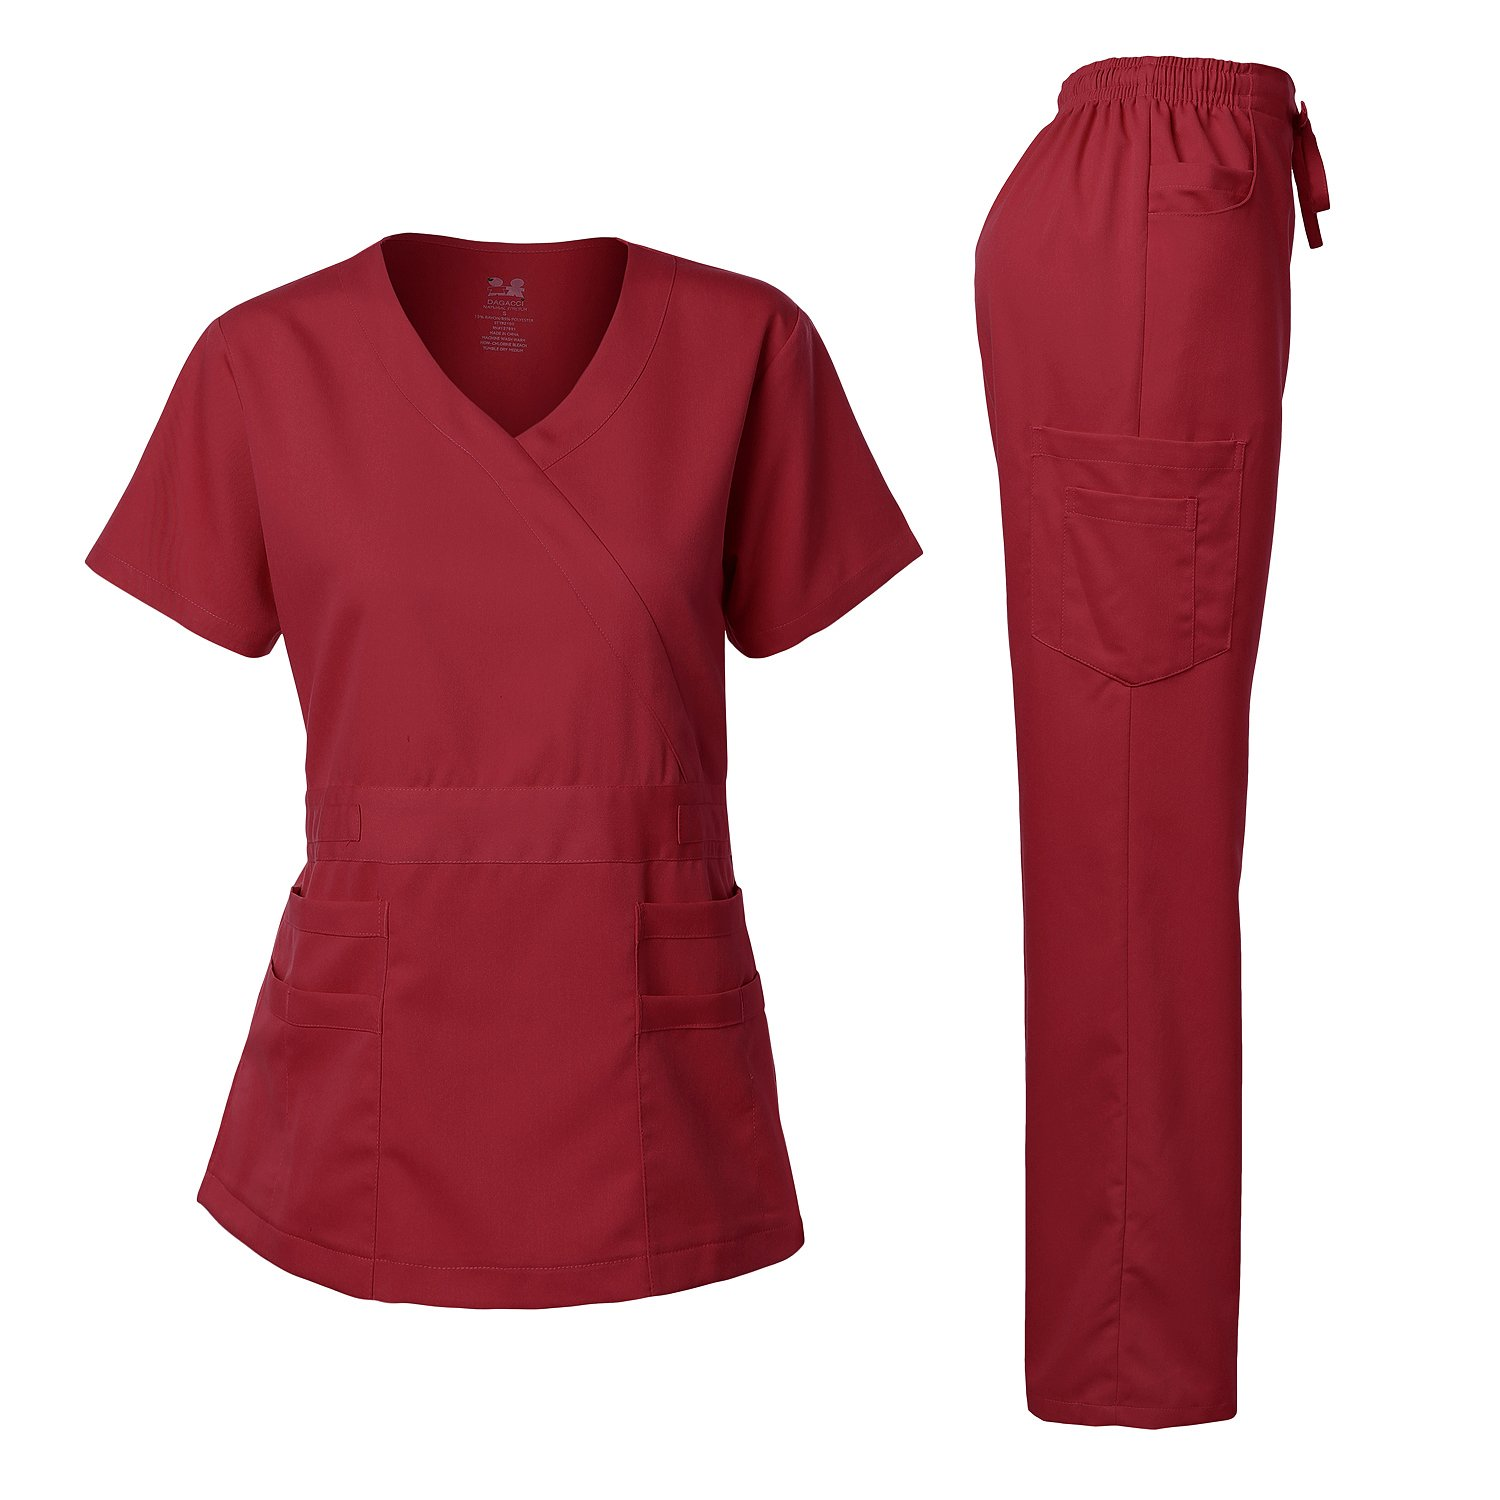 Dagacci Medical Uniform Women's Scrub Set Stretch and Soft Y-Neck Top and Pants